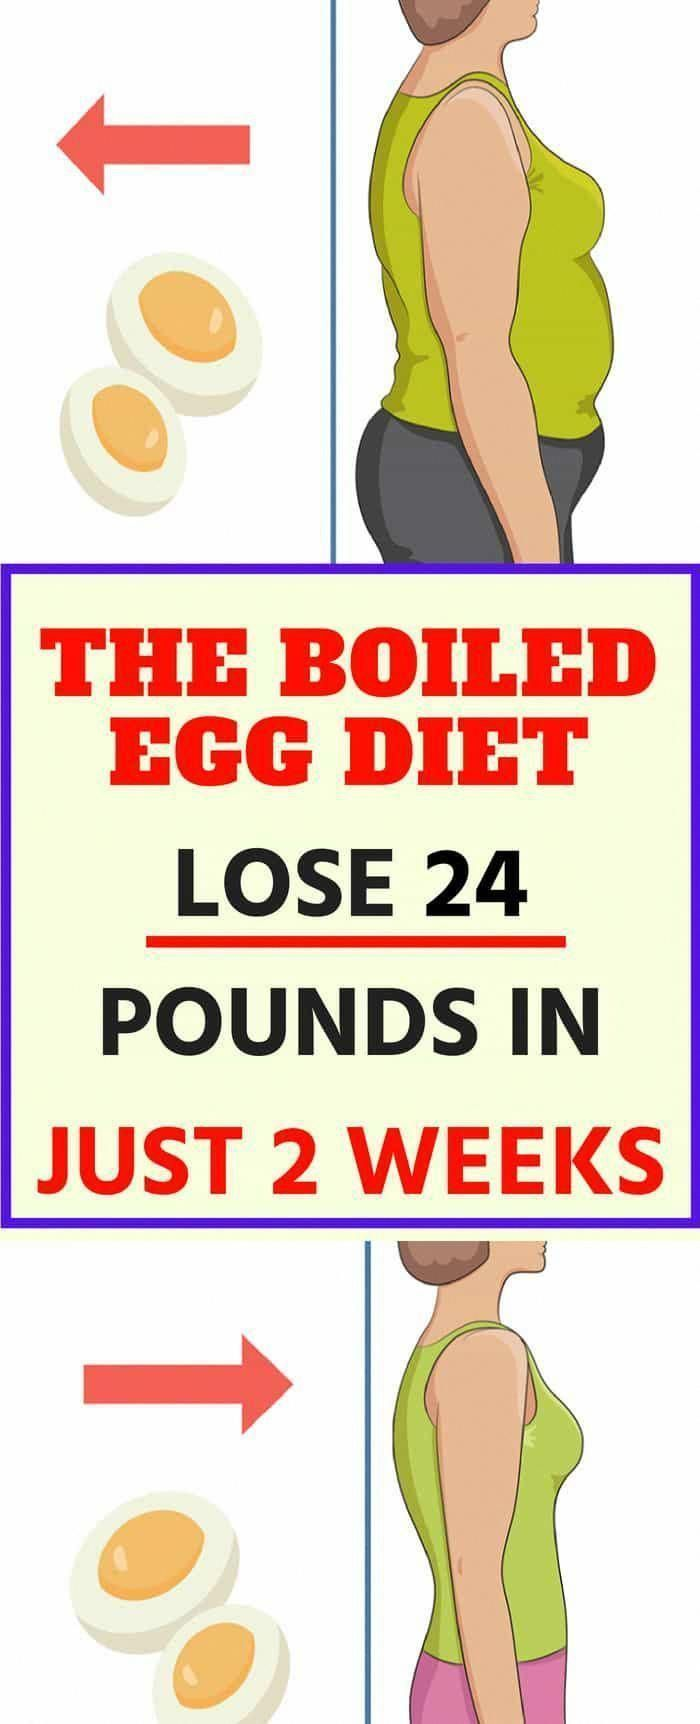 The Boiled Egg Eating plan ? Drop 24 Pounds In Just 2 Weeks #3DayEggDietWeightLoss #boiledeggnutrition The Boiled Egg Eating plan ? Drop 24 Pounds In Just 2 Weeks #3DayEggDietWeightLoss #boiledeggnutrition The Boiled Egg Eating plan ? Drop 24 Pounds In Just 2 Weeks #3DayEggDietWeightLoss #boiledeggnutrition The Boiled Egg Eating plan ? Drop 24 Pounds In Just 2 Weeks #3DayEggDietWeightLoss #boiledeggnutrition